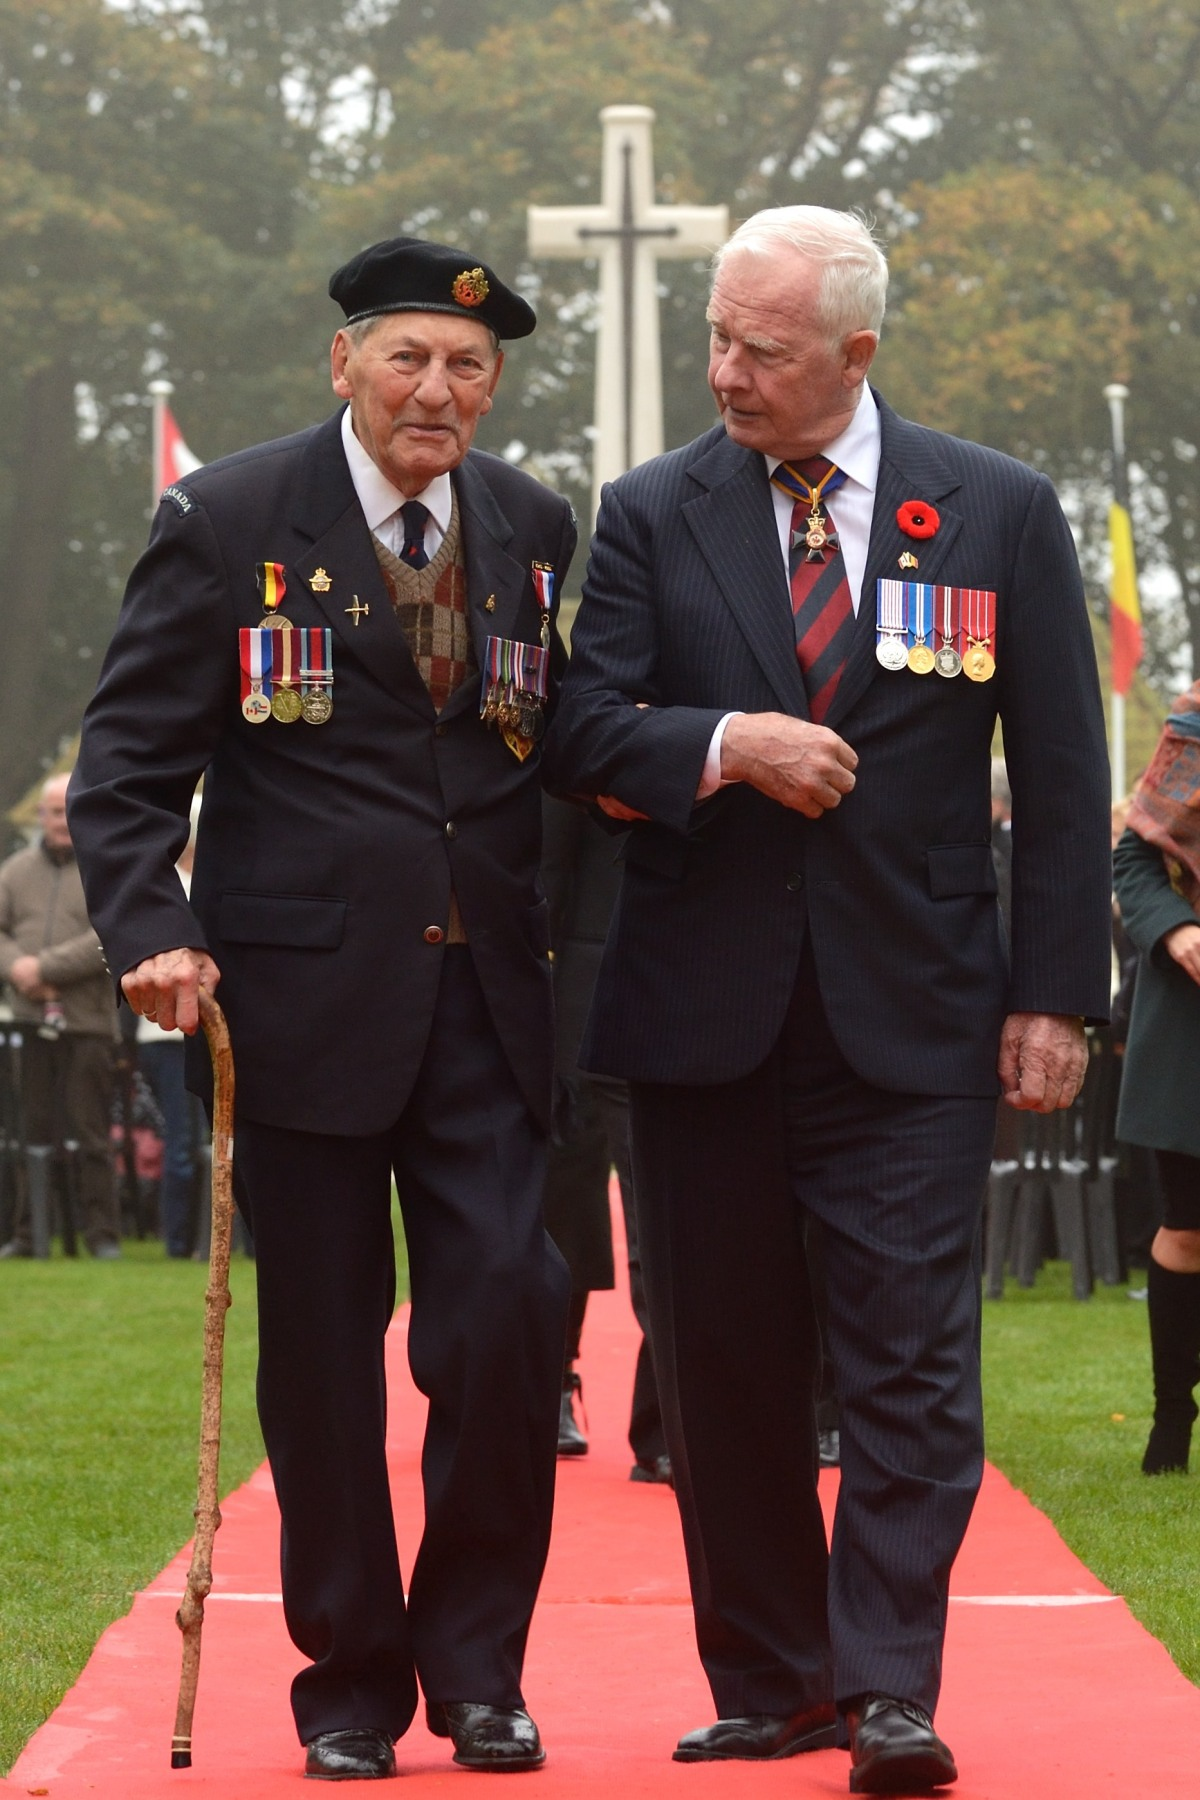 During the ceremony, the Governor General had the honour of walking alongside a Second World War Canadian veteran.